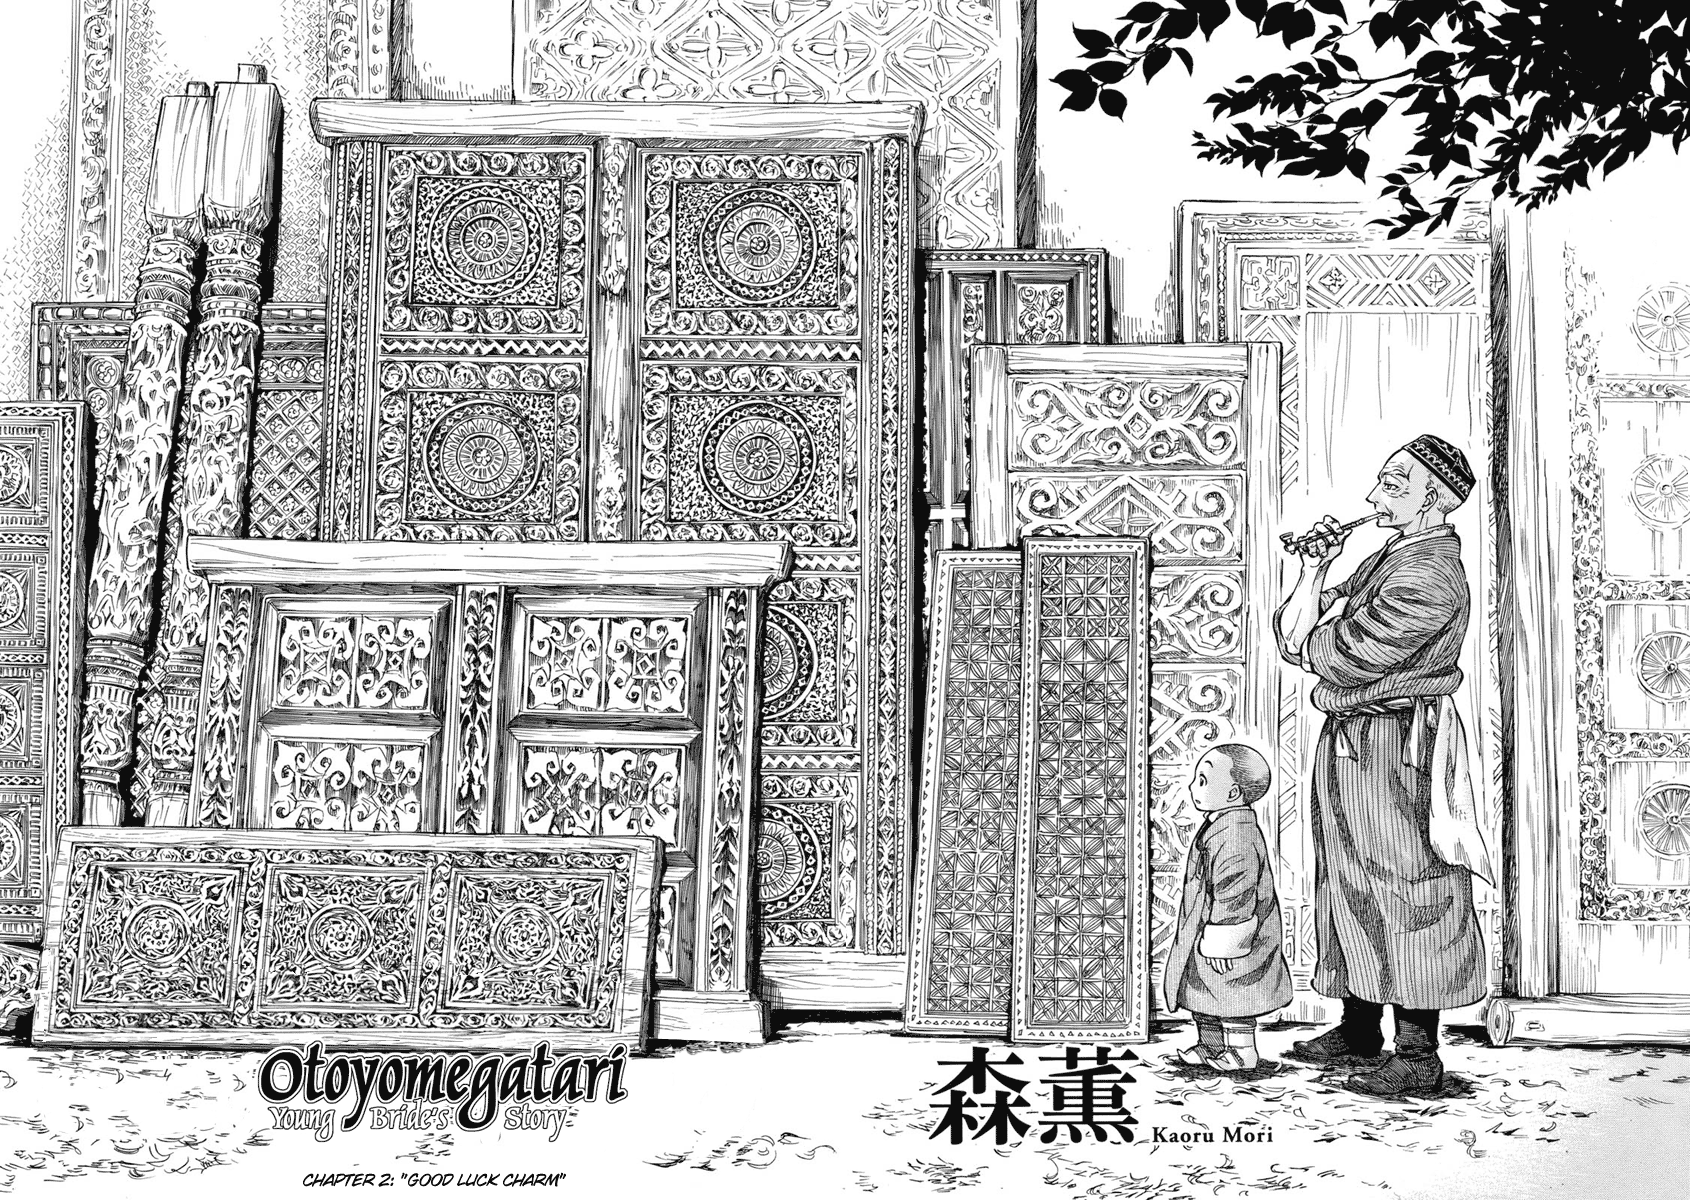 Hand-carved wooden panelling from Central Asia. From manga A Bride's Story or Otoyomegatari